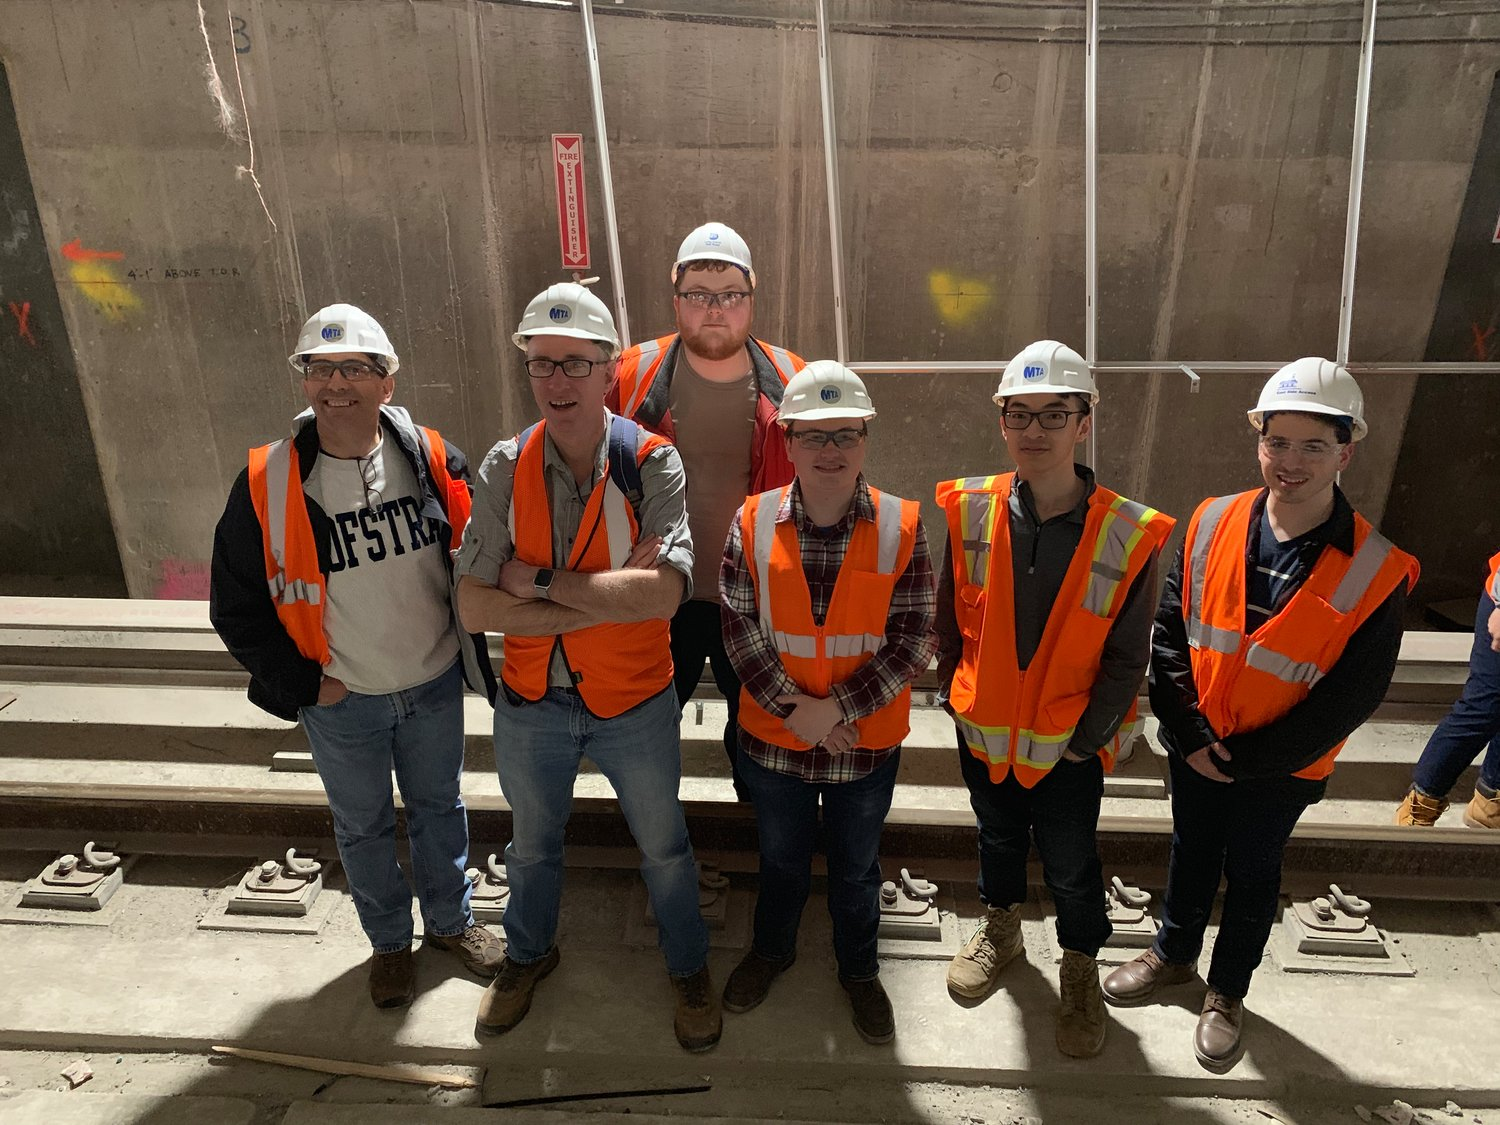 Students, professors and school officials from Hofstra University toured the Metropolitan Transportation Authority's East Side Access project in New York City earlier this month. Among the group were, from left, Hofstra Dean of Honors college professor Warren Frisina; geology professor Dr. Bret Bennington, of West Hempstead; and students Christopher Heilig, Ryan Leighton, Austin Nguyen and Jeffery Schmelkin.